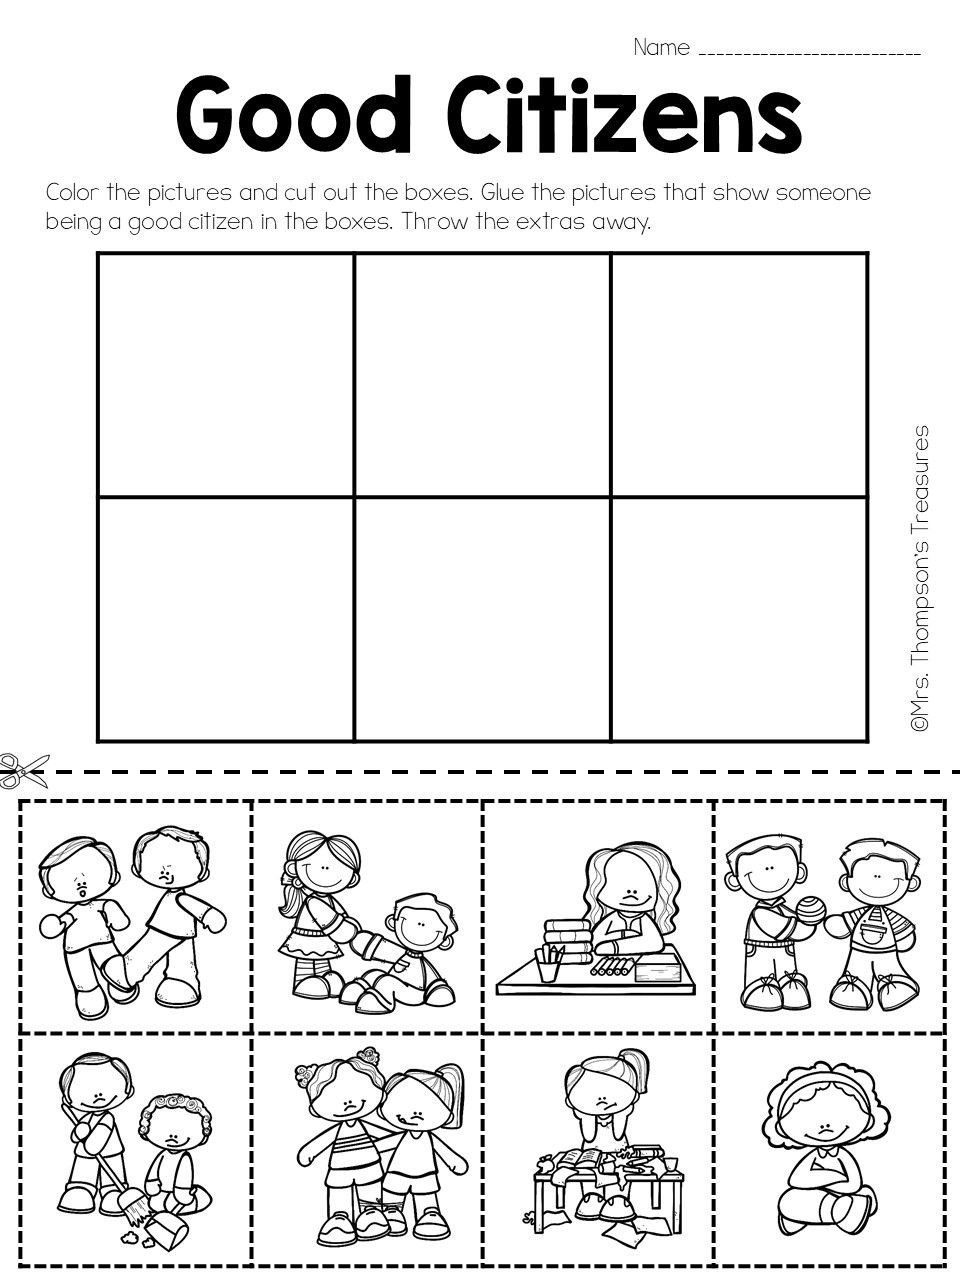 Social Studies Kindergarten Worksheets social Stu S Being A Good Citizen with Images